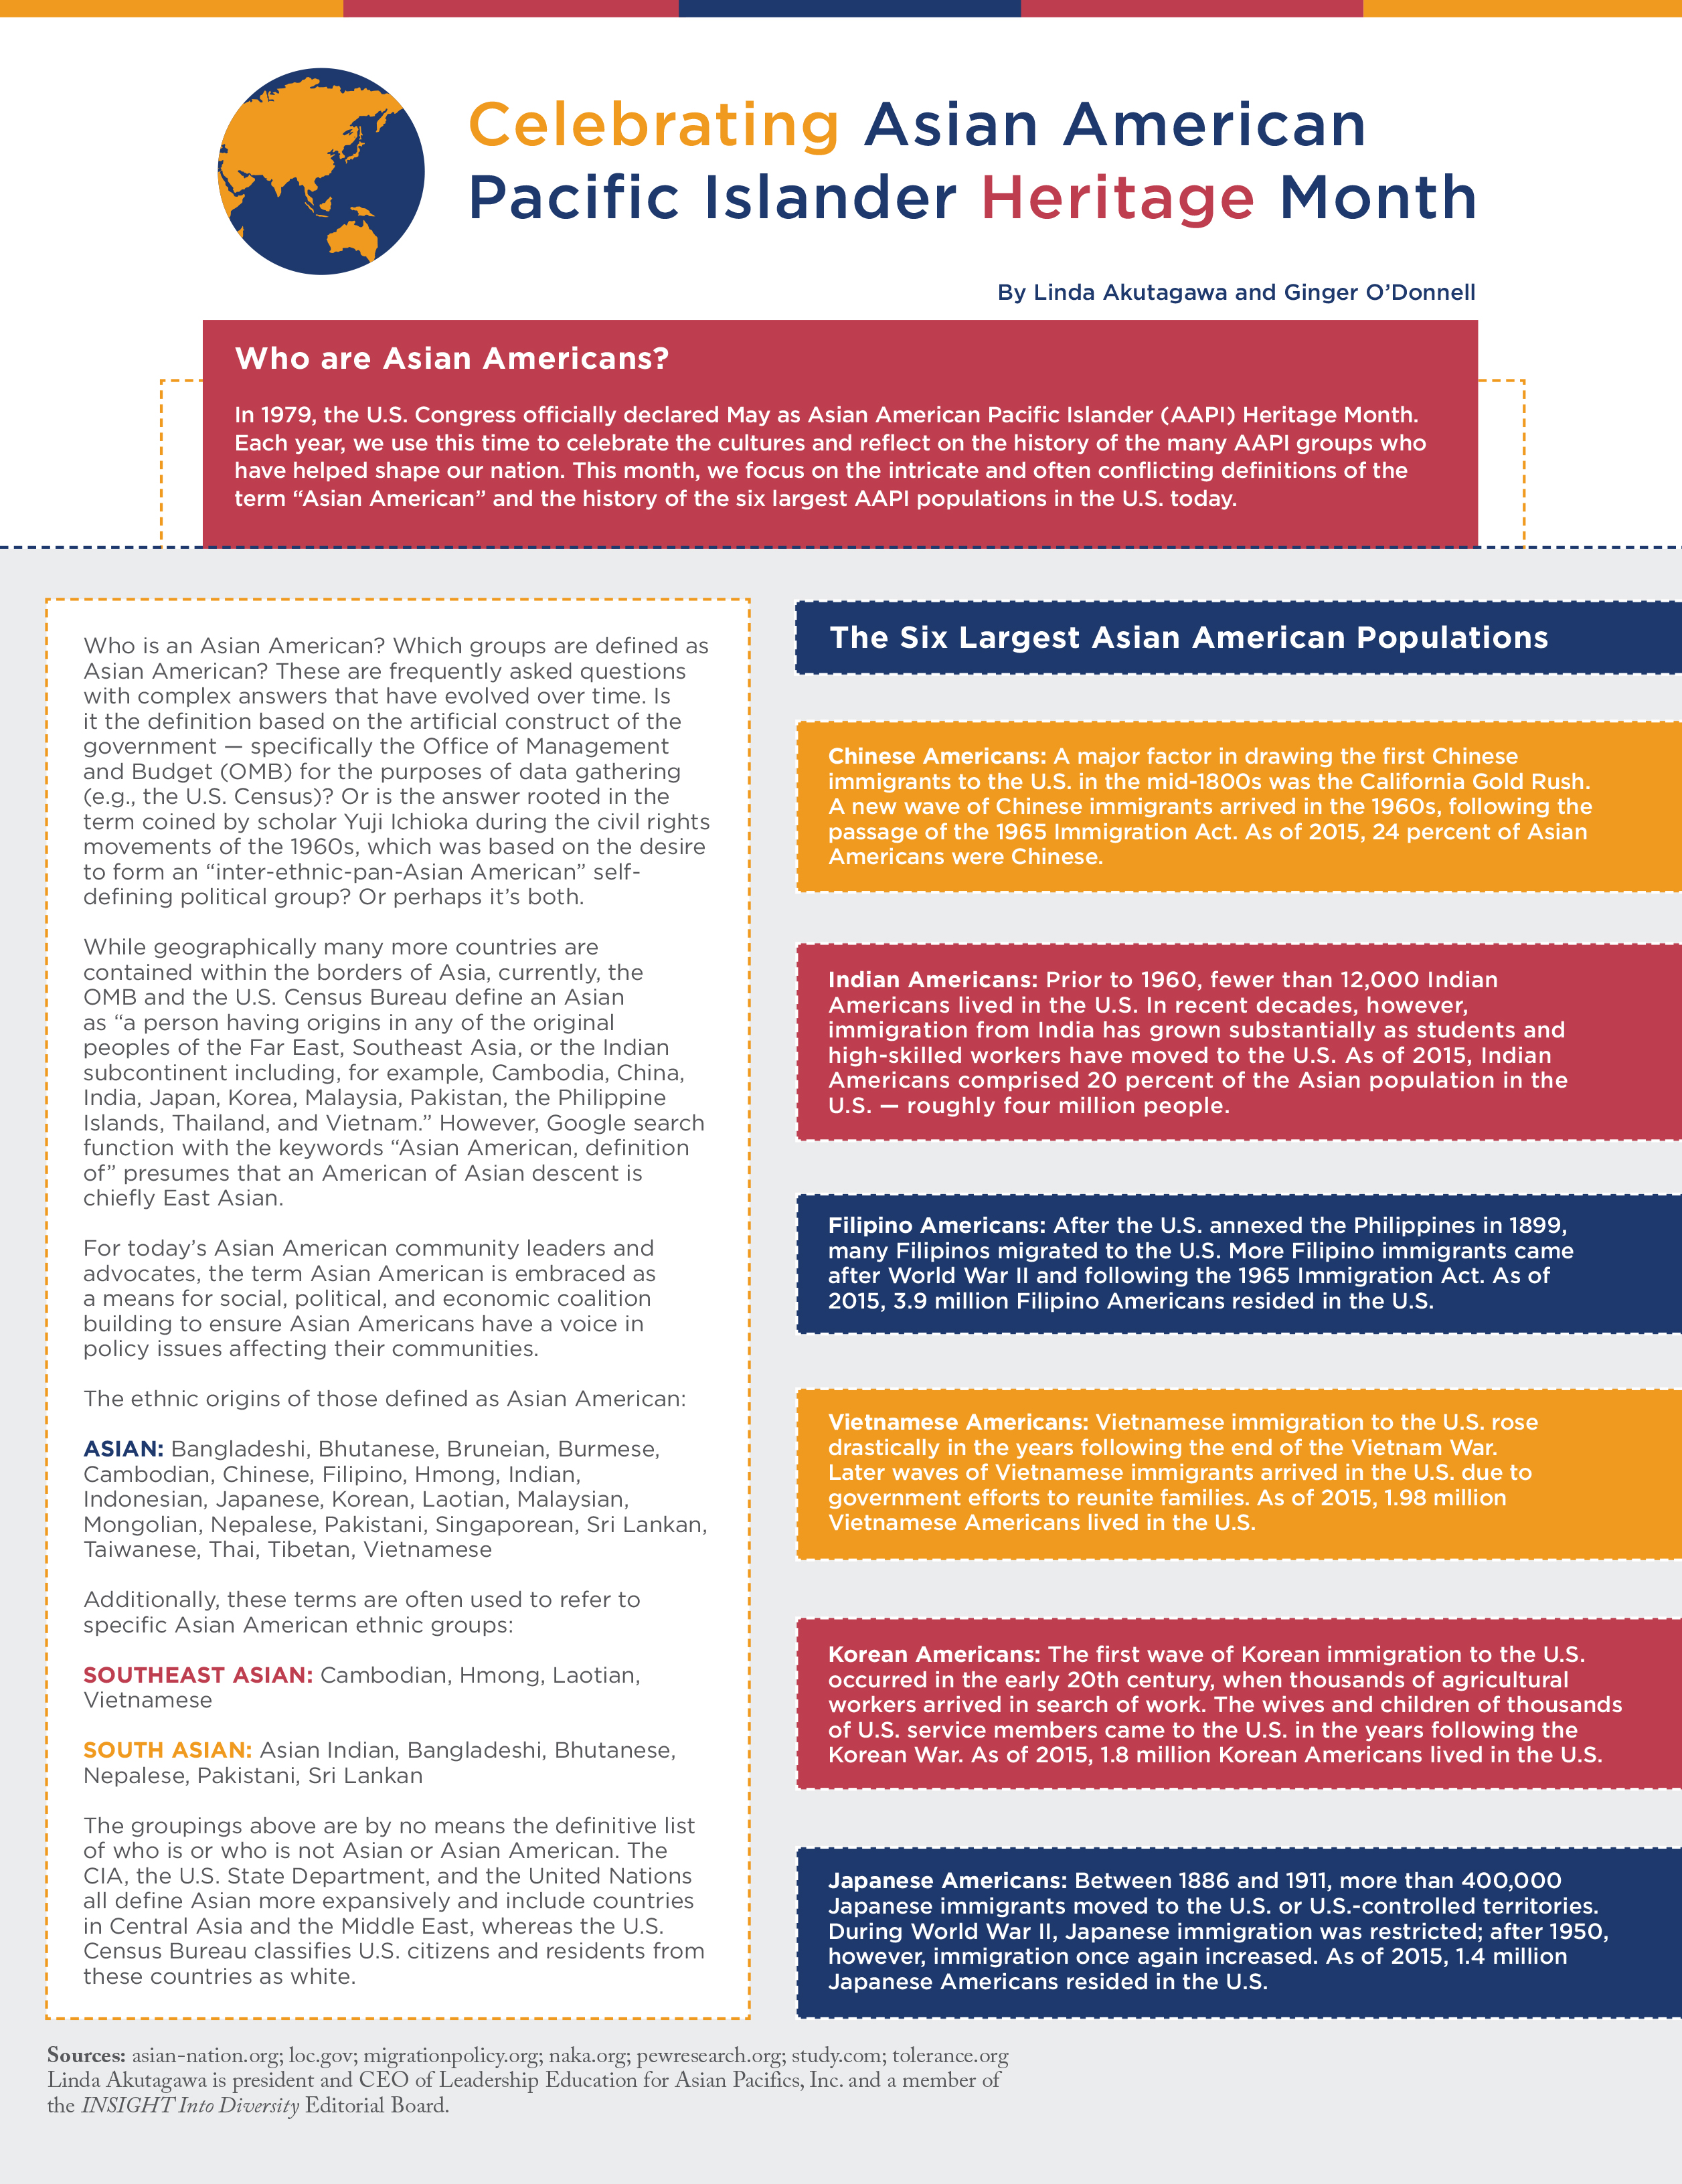 Insight into Diversity infographic by Linda Akutagawa and Ginger O'Donnell sharing details about which nations are included in the AAPI definition